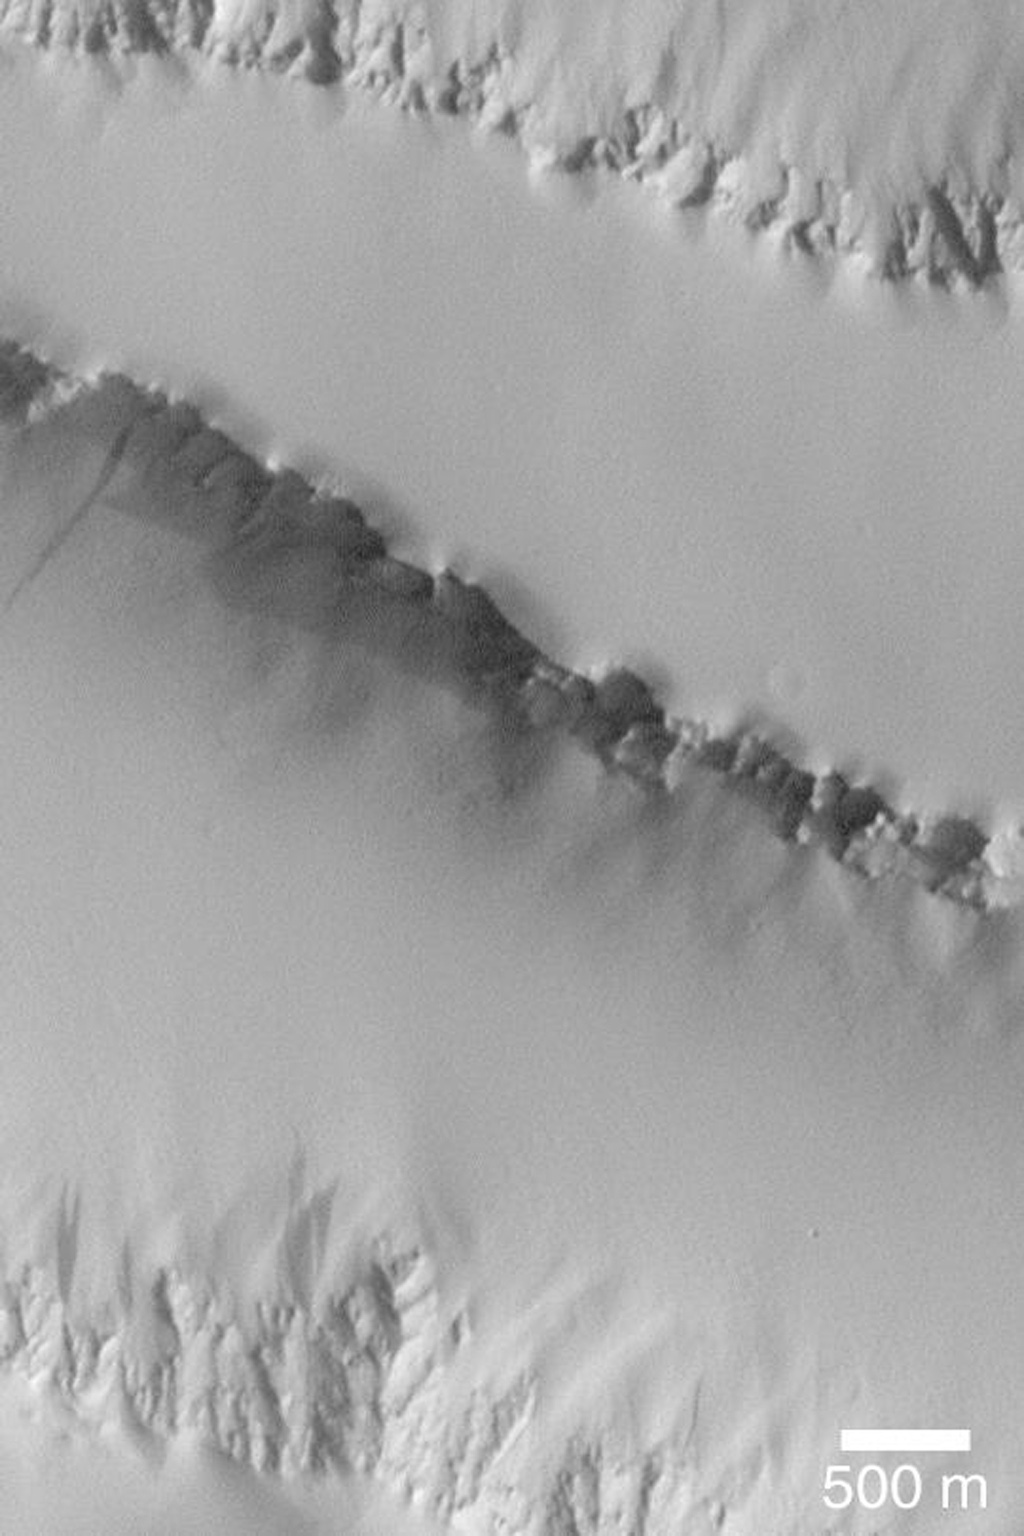 NASA's Mars Global Surveyor shows a thick mantle of dust covering lava flows north of Pavonis Mons on Mars so well that the flows are no longer visible.